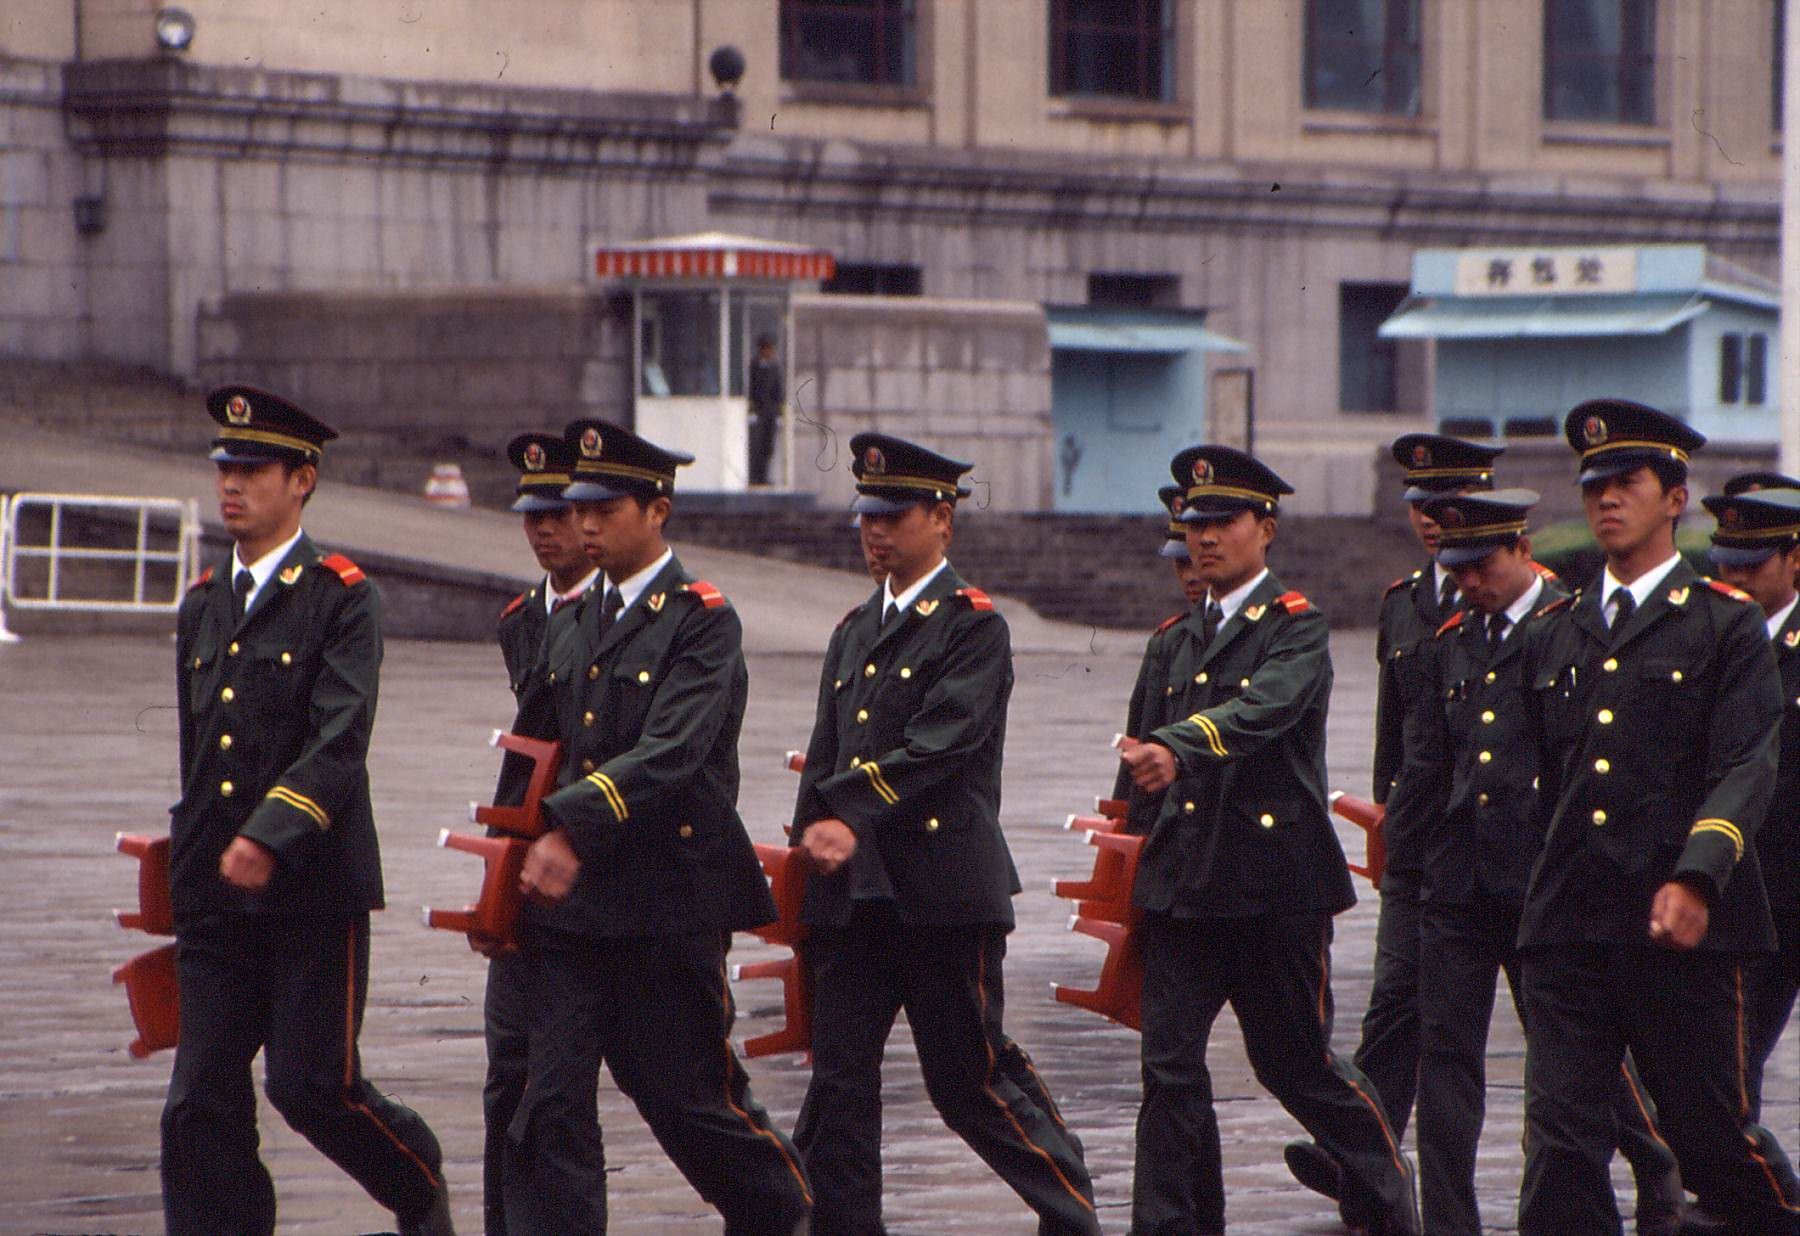 Tiananmen 25 Years Later – What Has Changed?